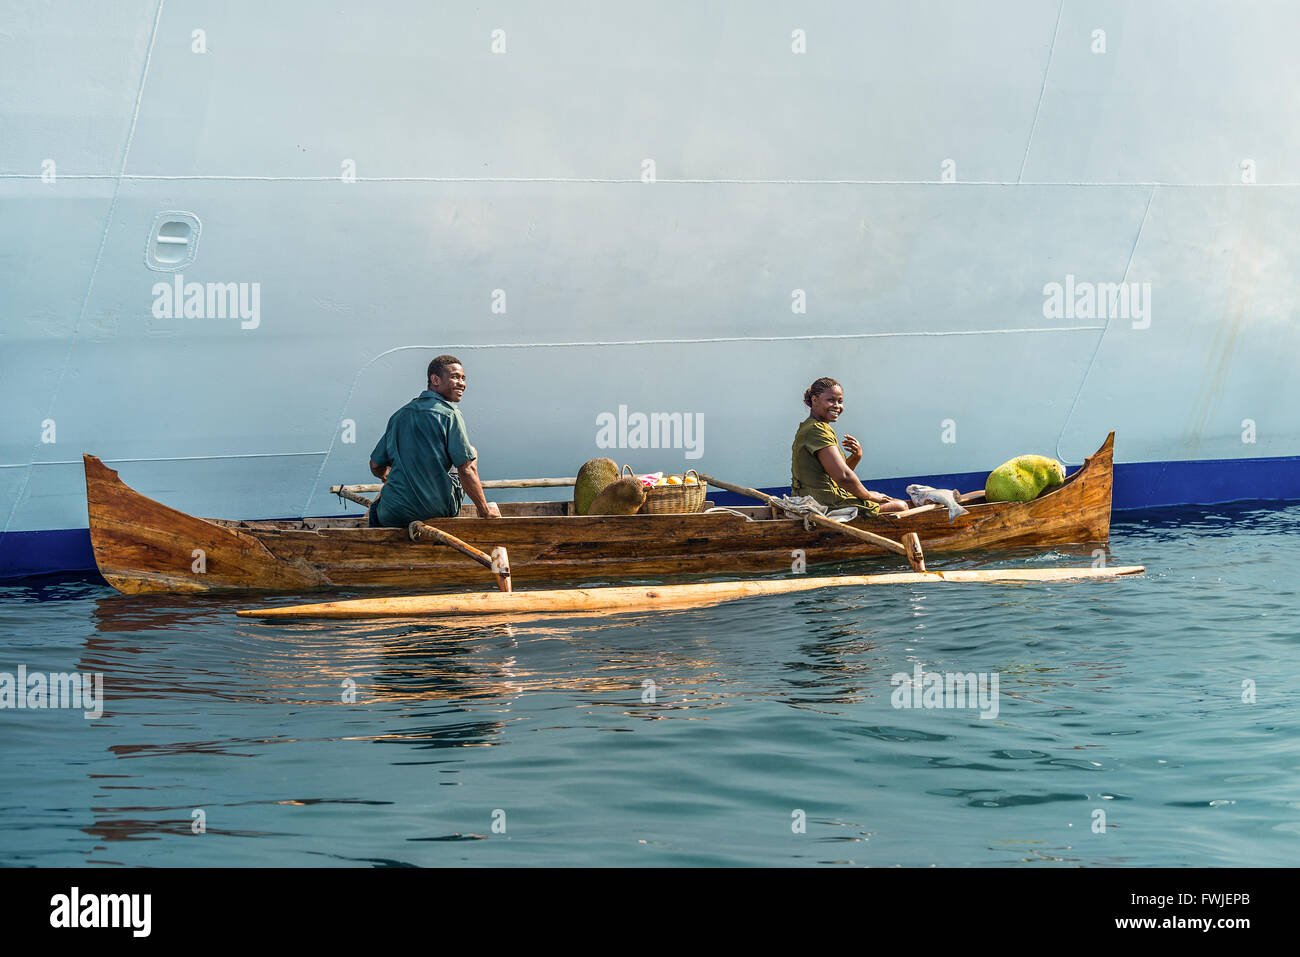 Malagasy vendors from their outrigger canoe offer crabs, fish and tropical fruits to - Stock Image